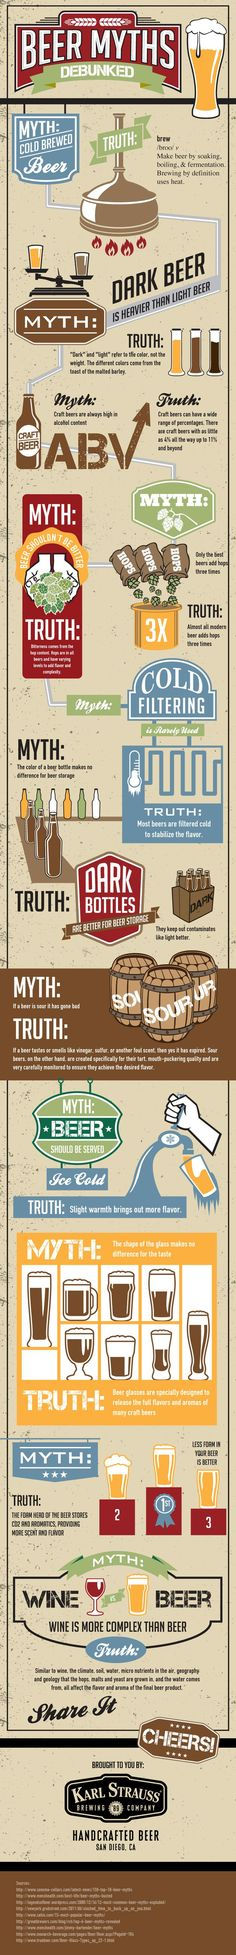 A look at a range of #beer myths that are often taken as fact - Find out more in this #infographic - www.finedininglov...